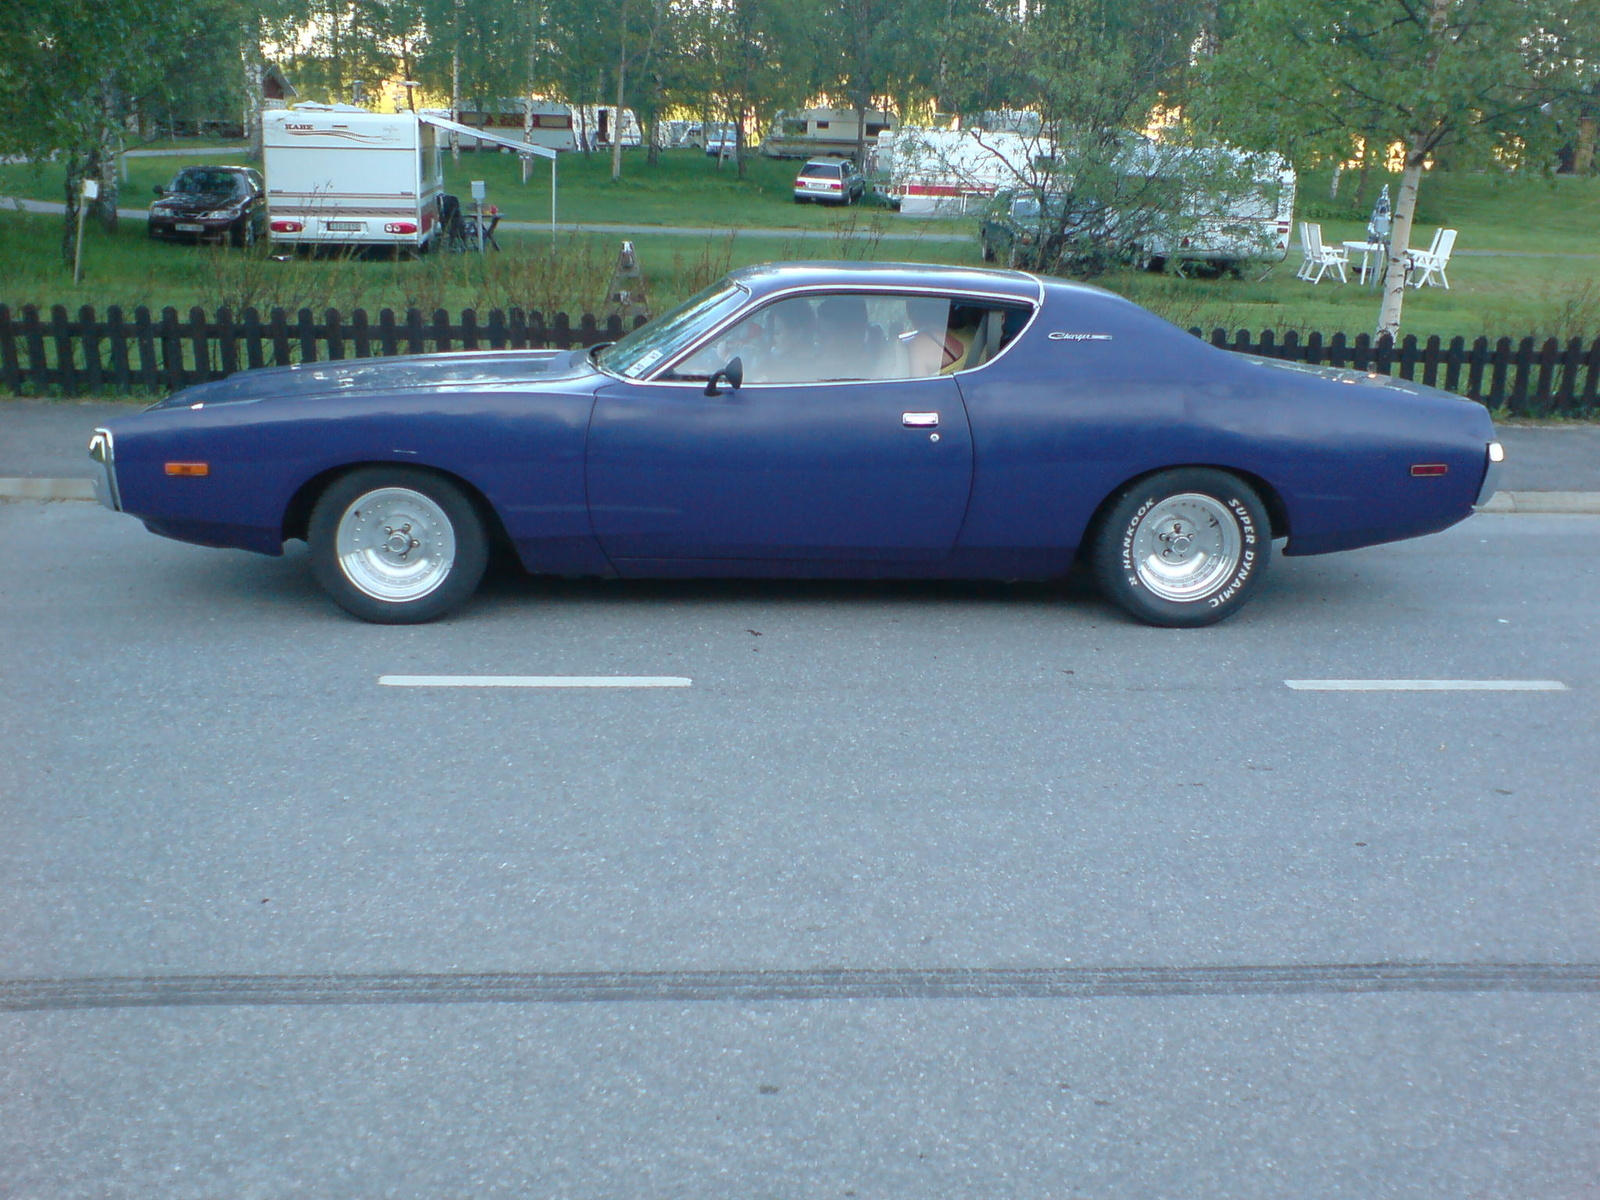 1972 Dodge Charger picture, exterior